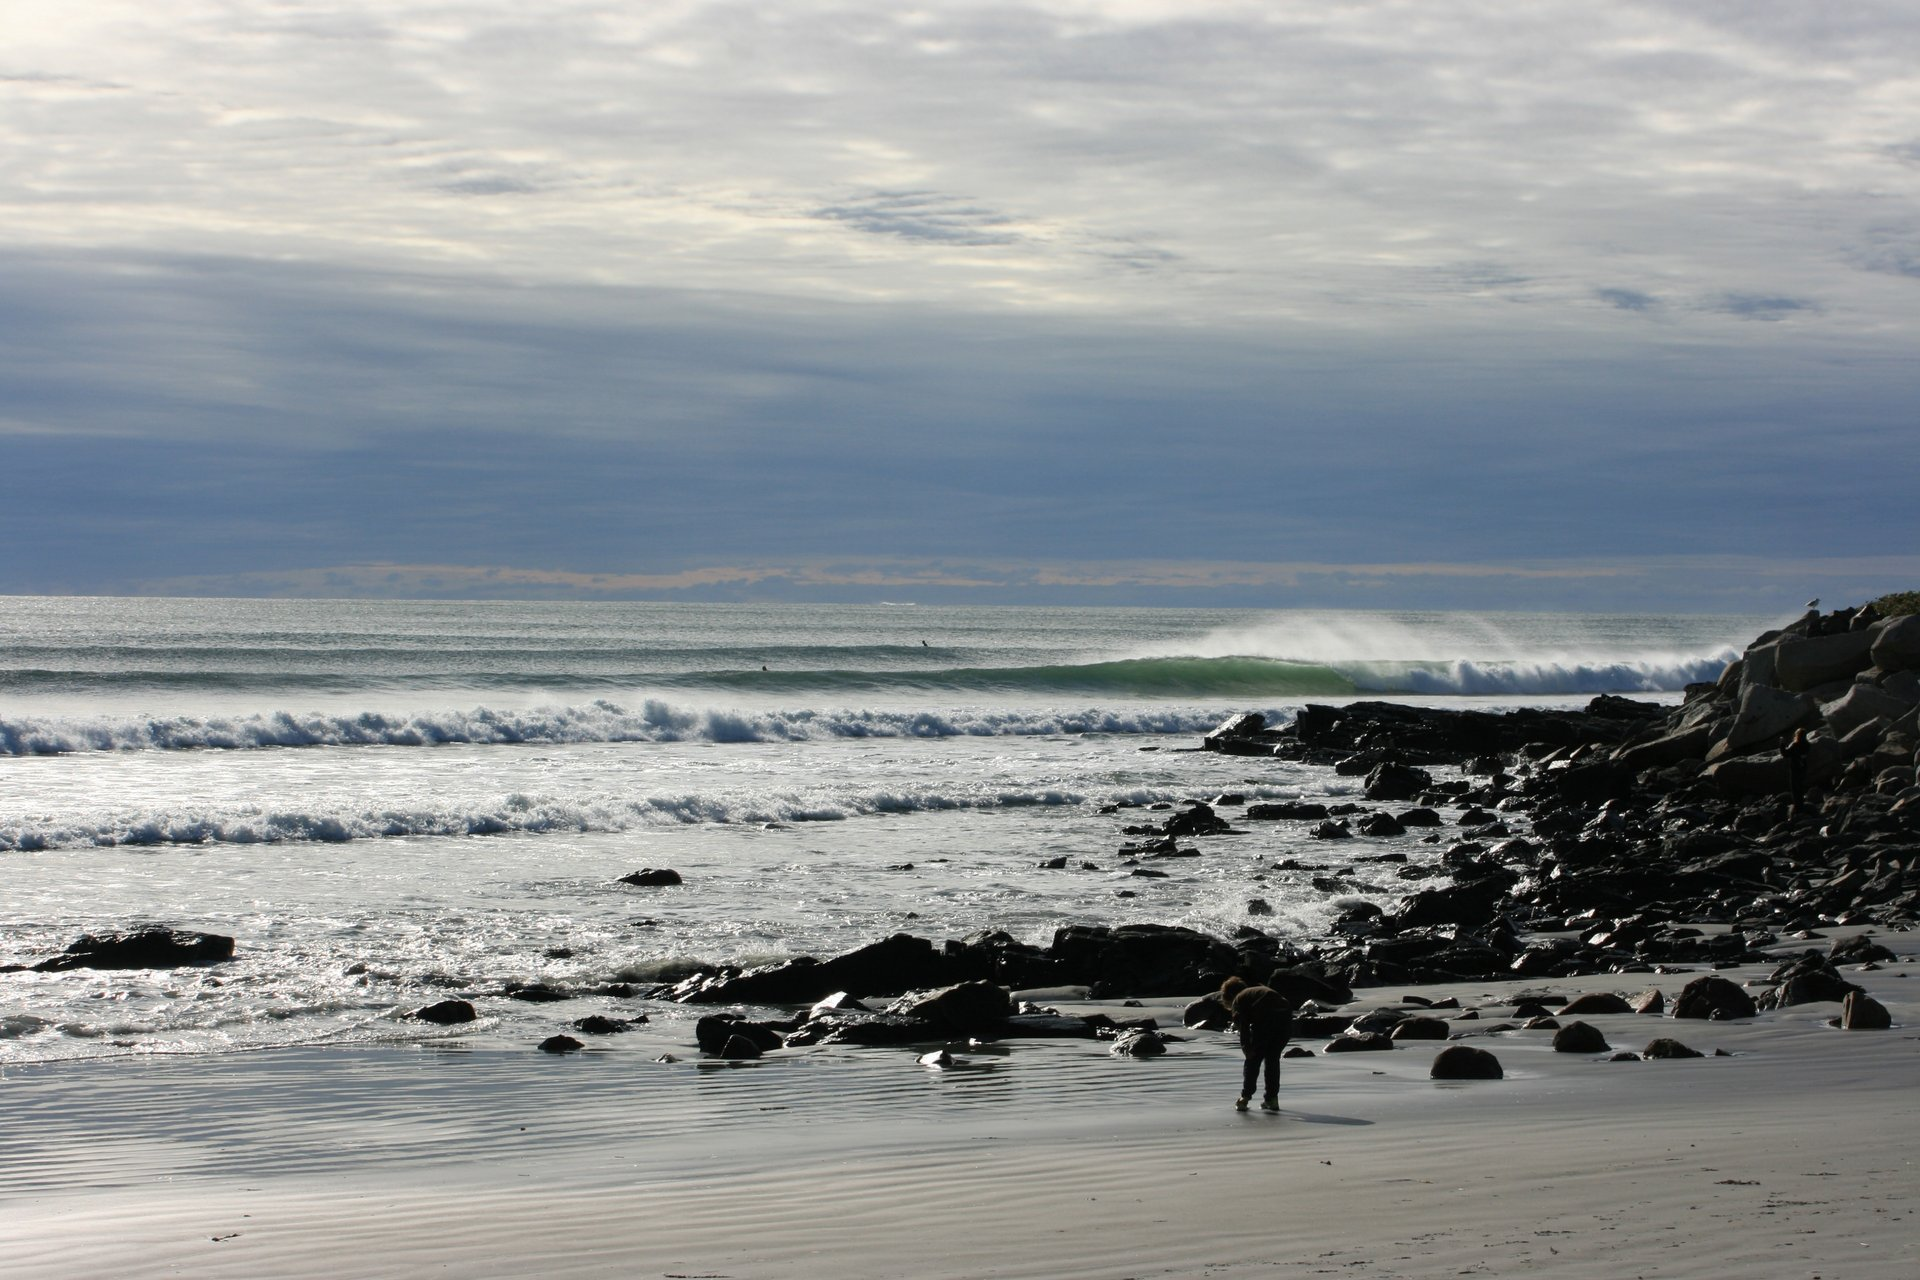 Mhd Surfer's photo of Long Sands